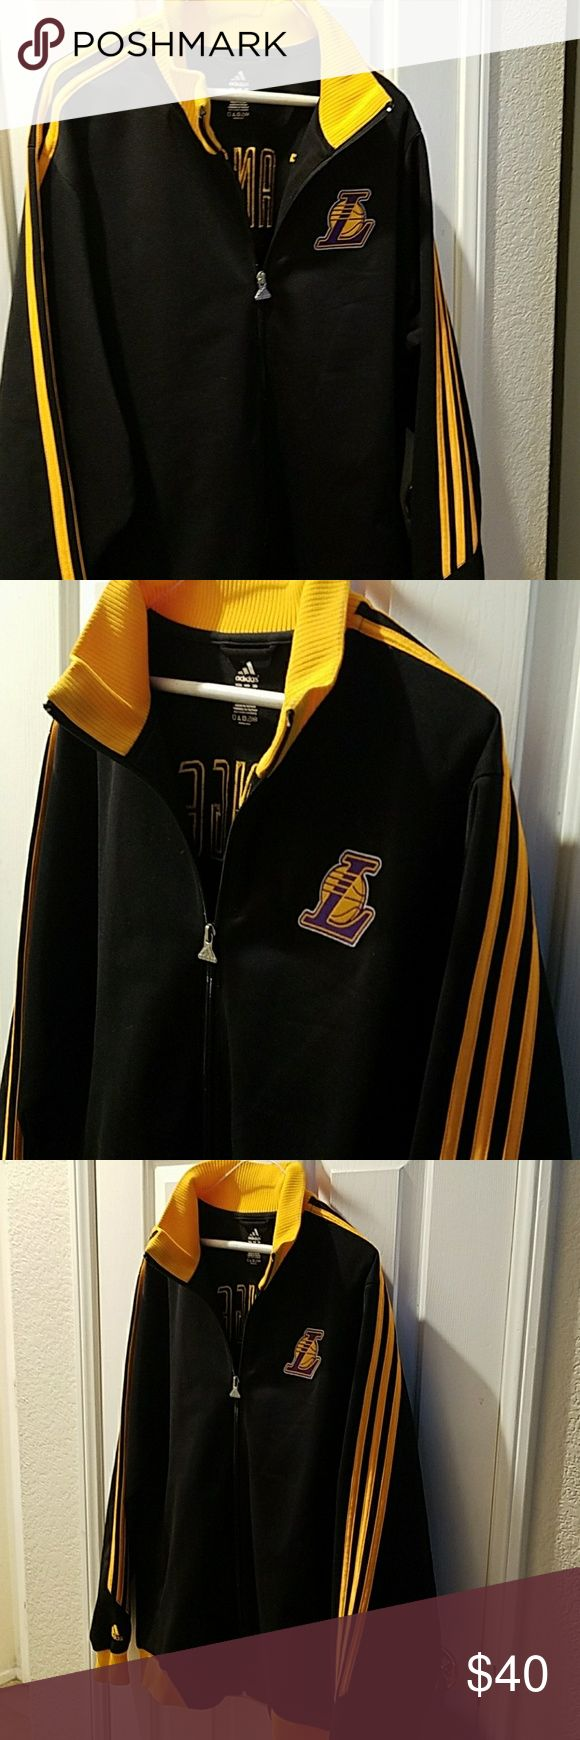 Men's Lakers Jacket Black with gold strips and Los Angeles on back Adidas Jackets & Coats Performance Jackets